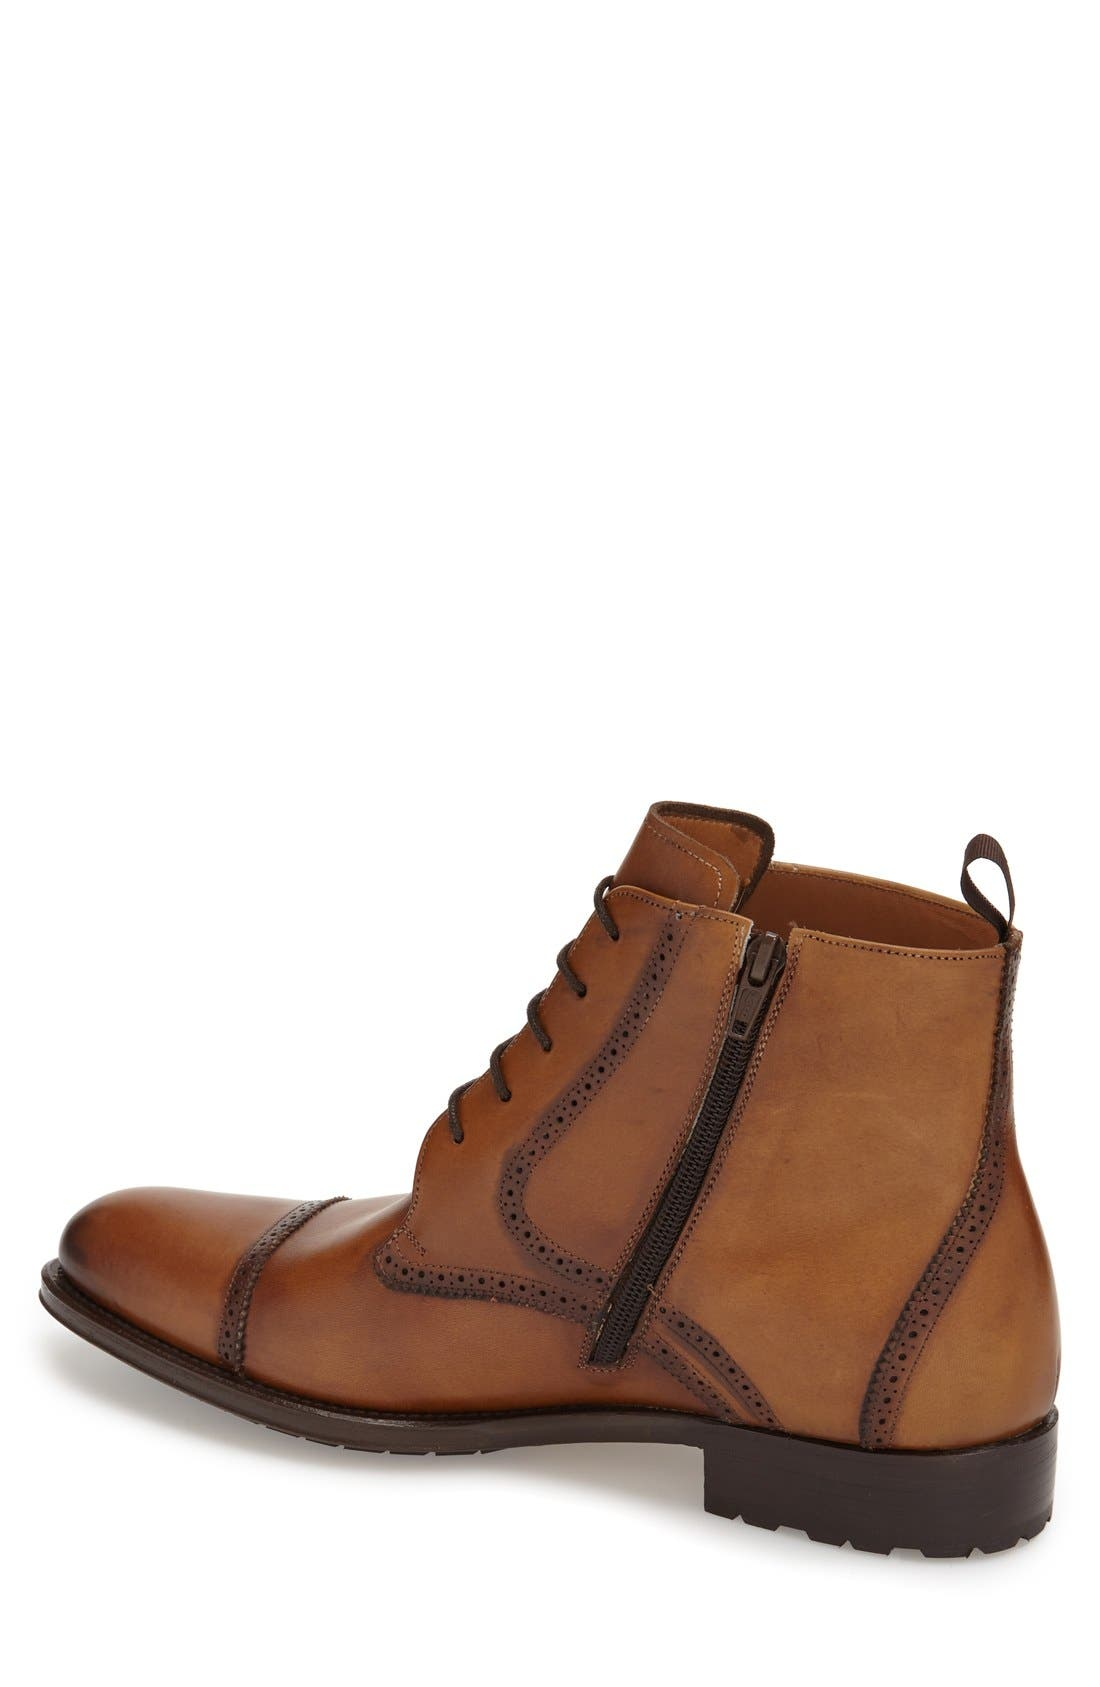 'Breman' Boot,                             Alternate thumbnail 2, color,                             235